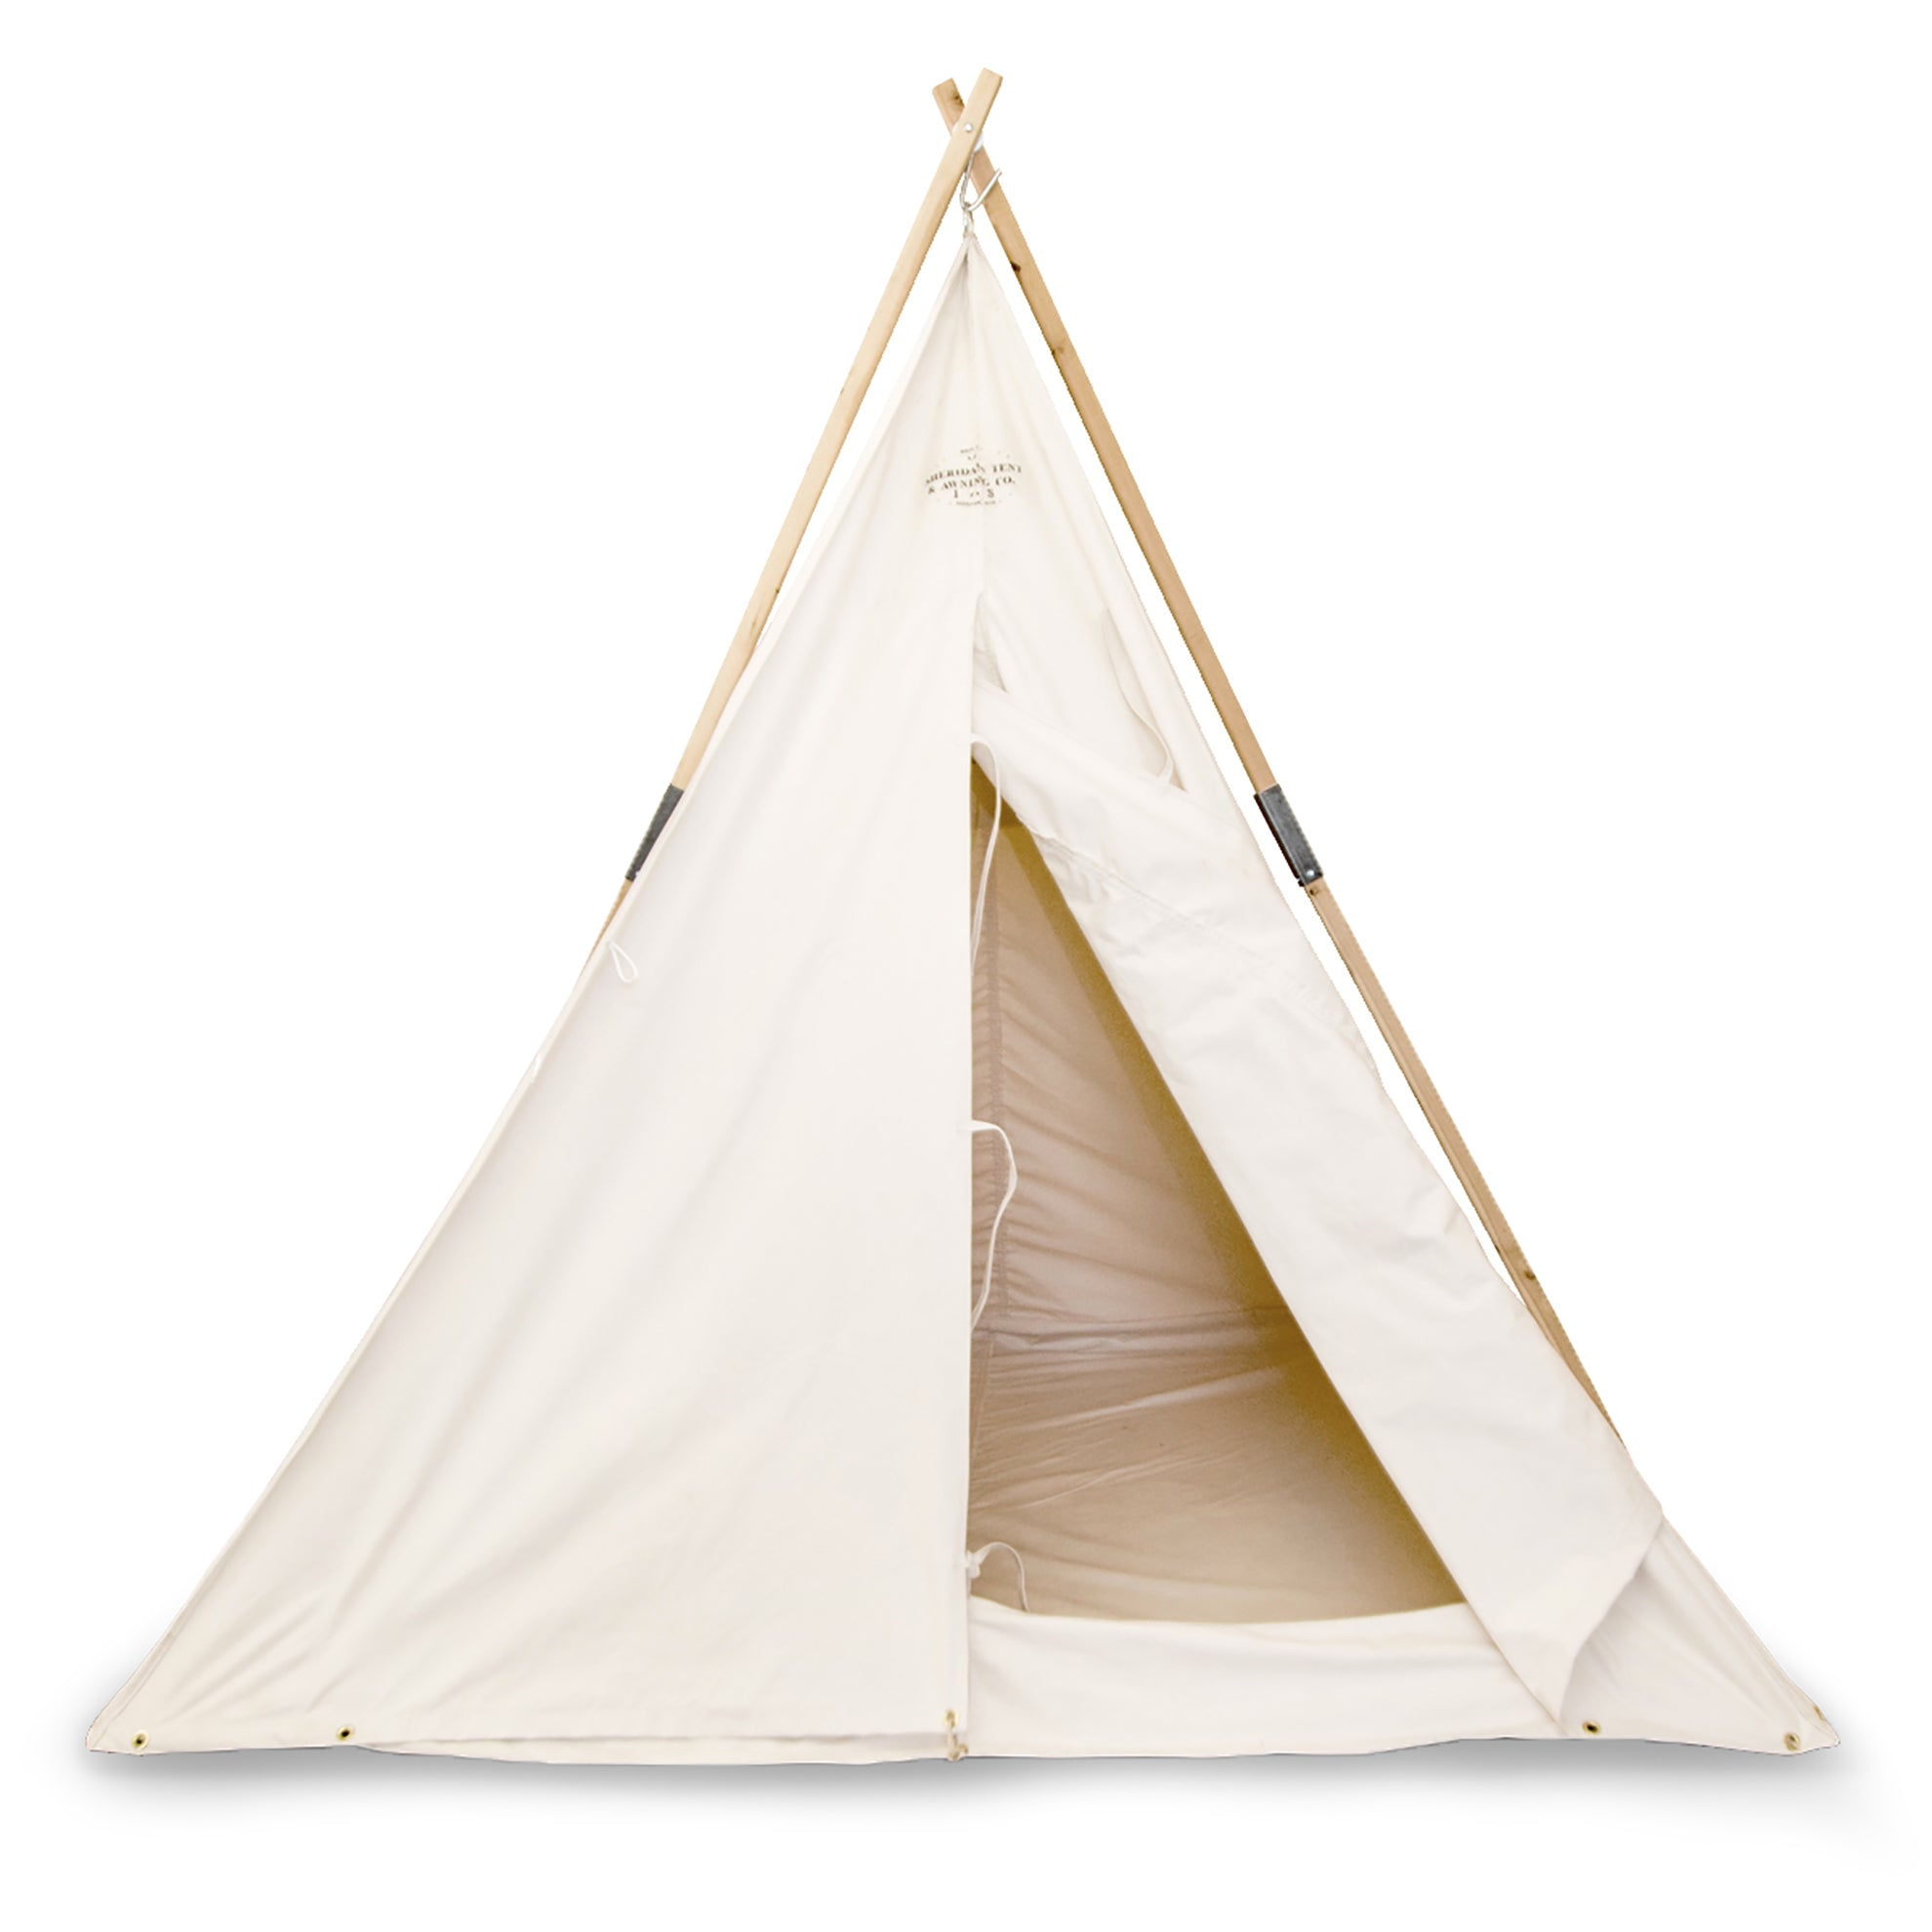 3-Pole Canvas Range Tent